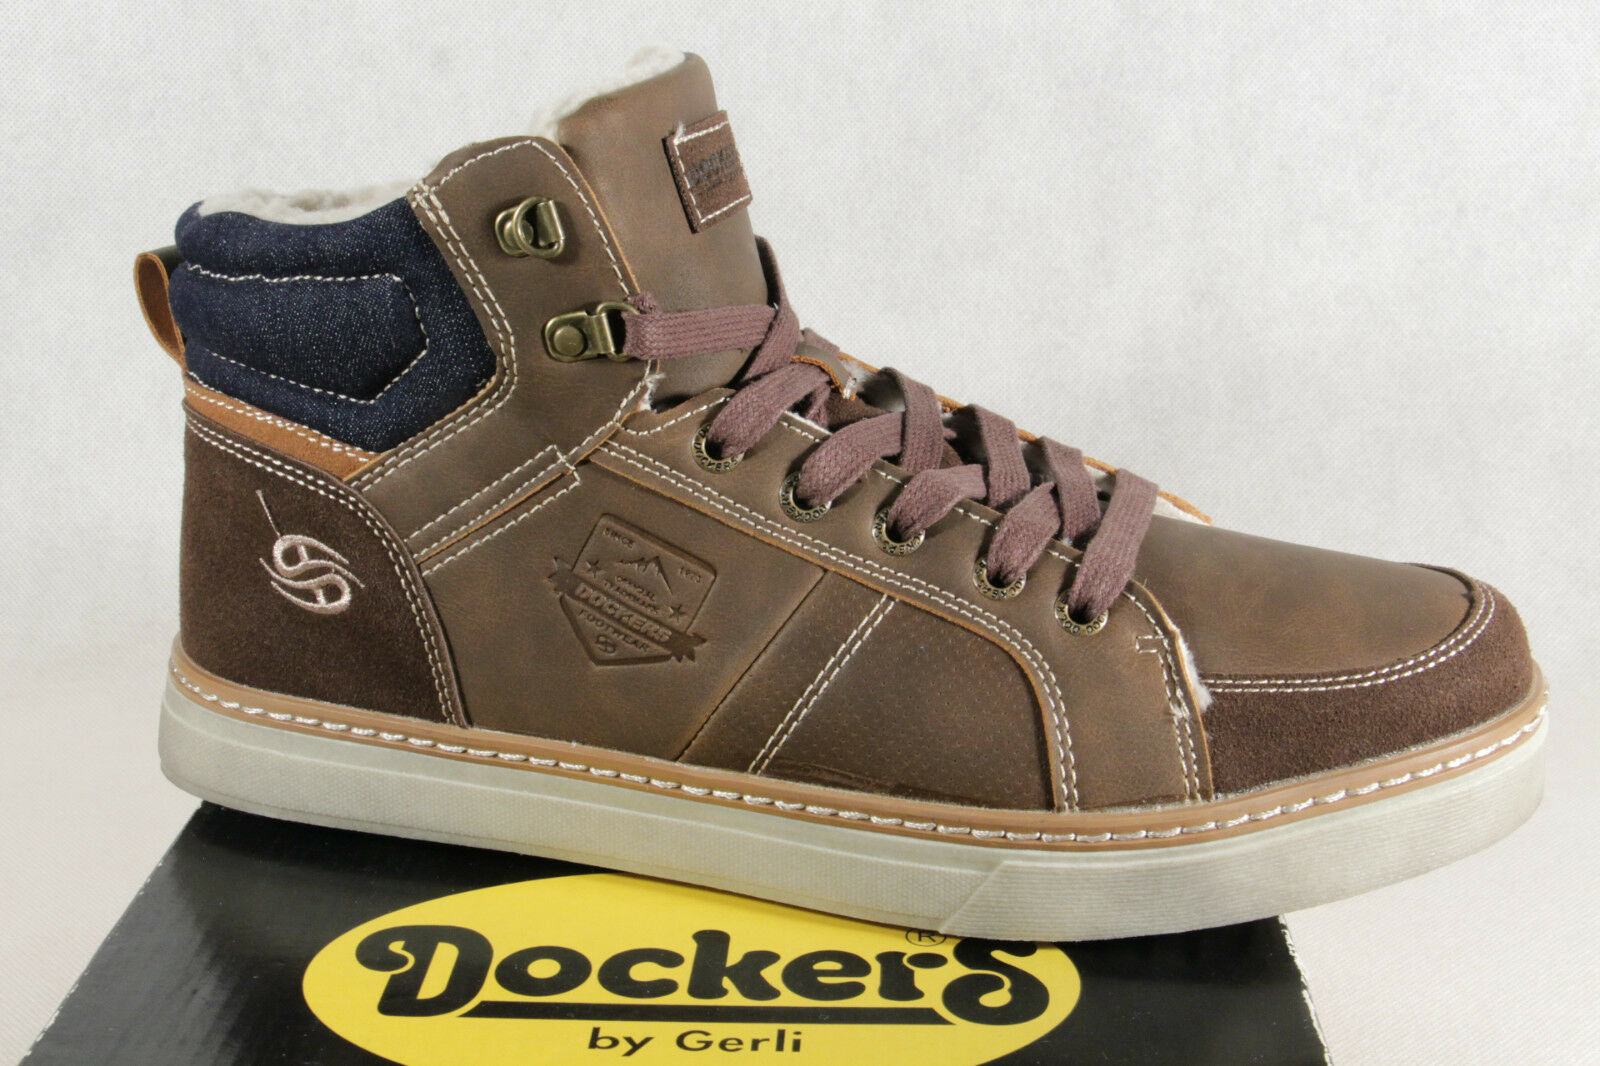 Dockers Men's Boots Lace Up Boots Boots Winter Boots Ankle Boots Brown NEW